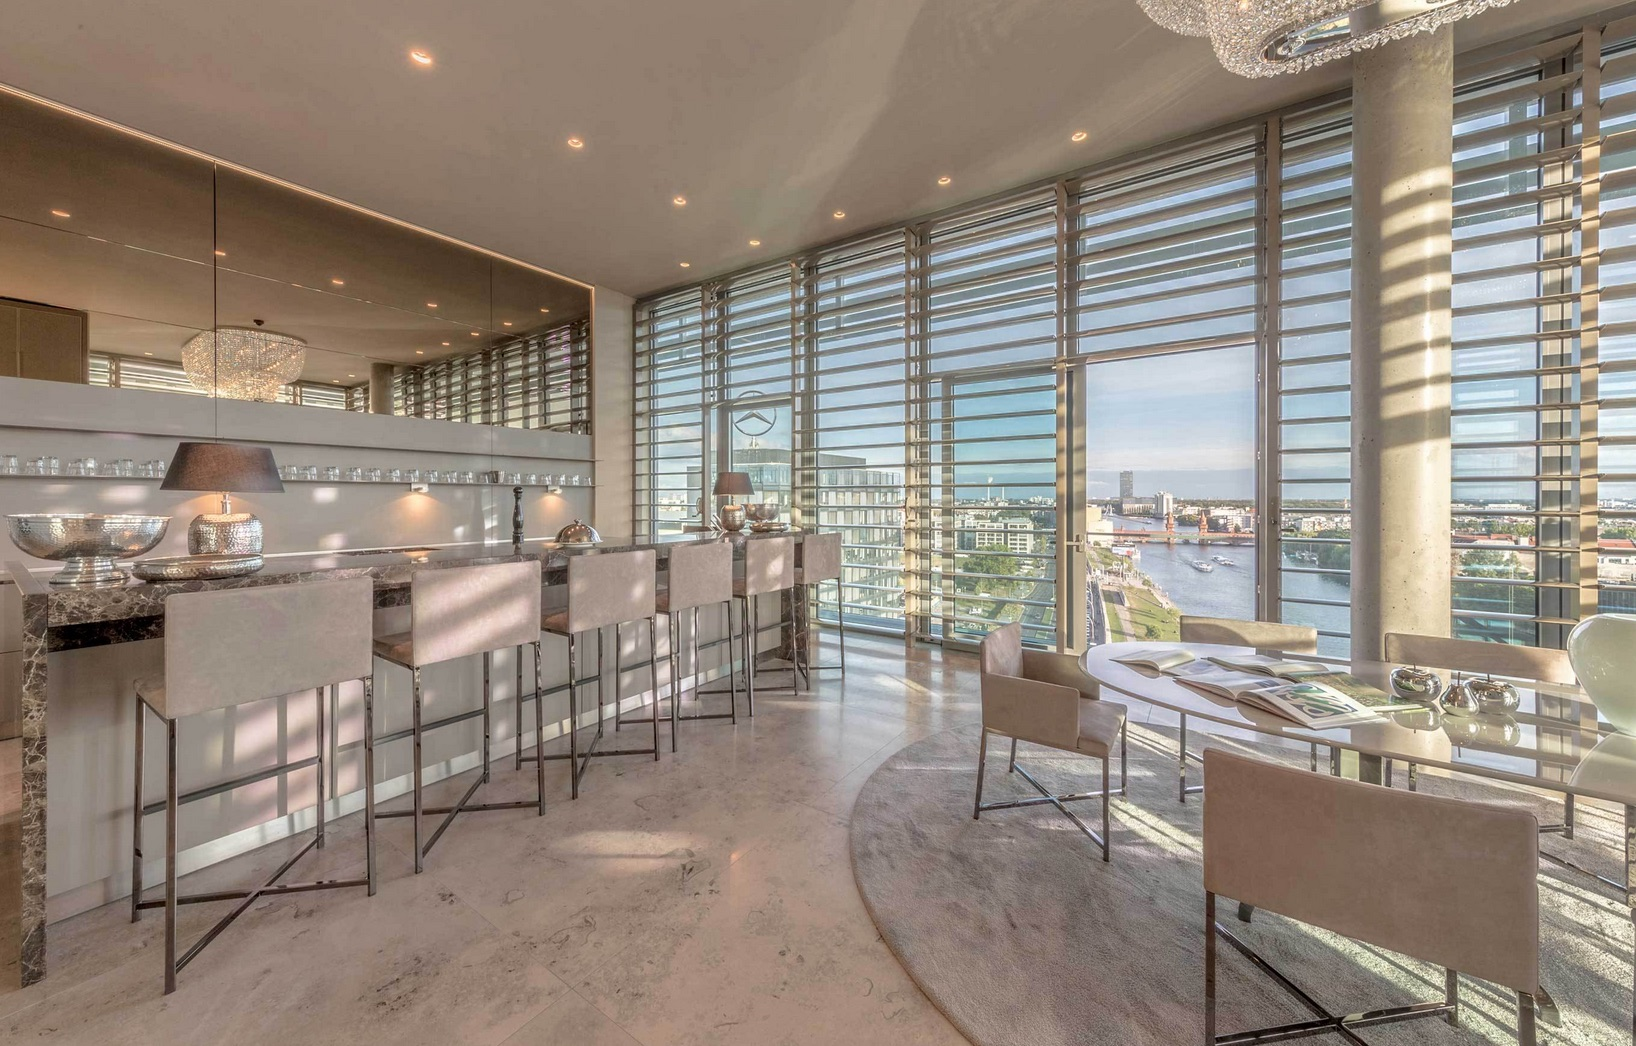 5 tips for selling luxury apartments and high